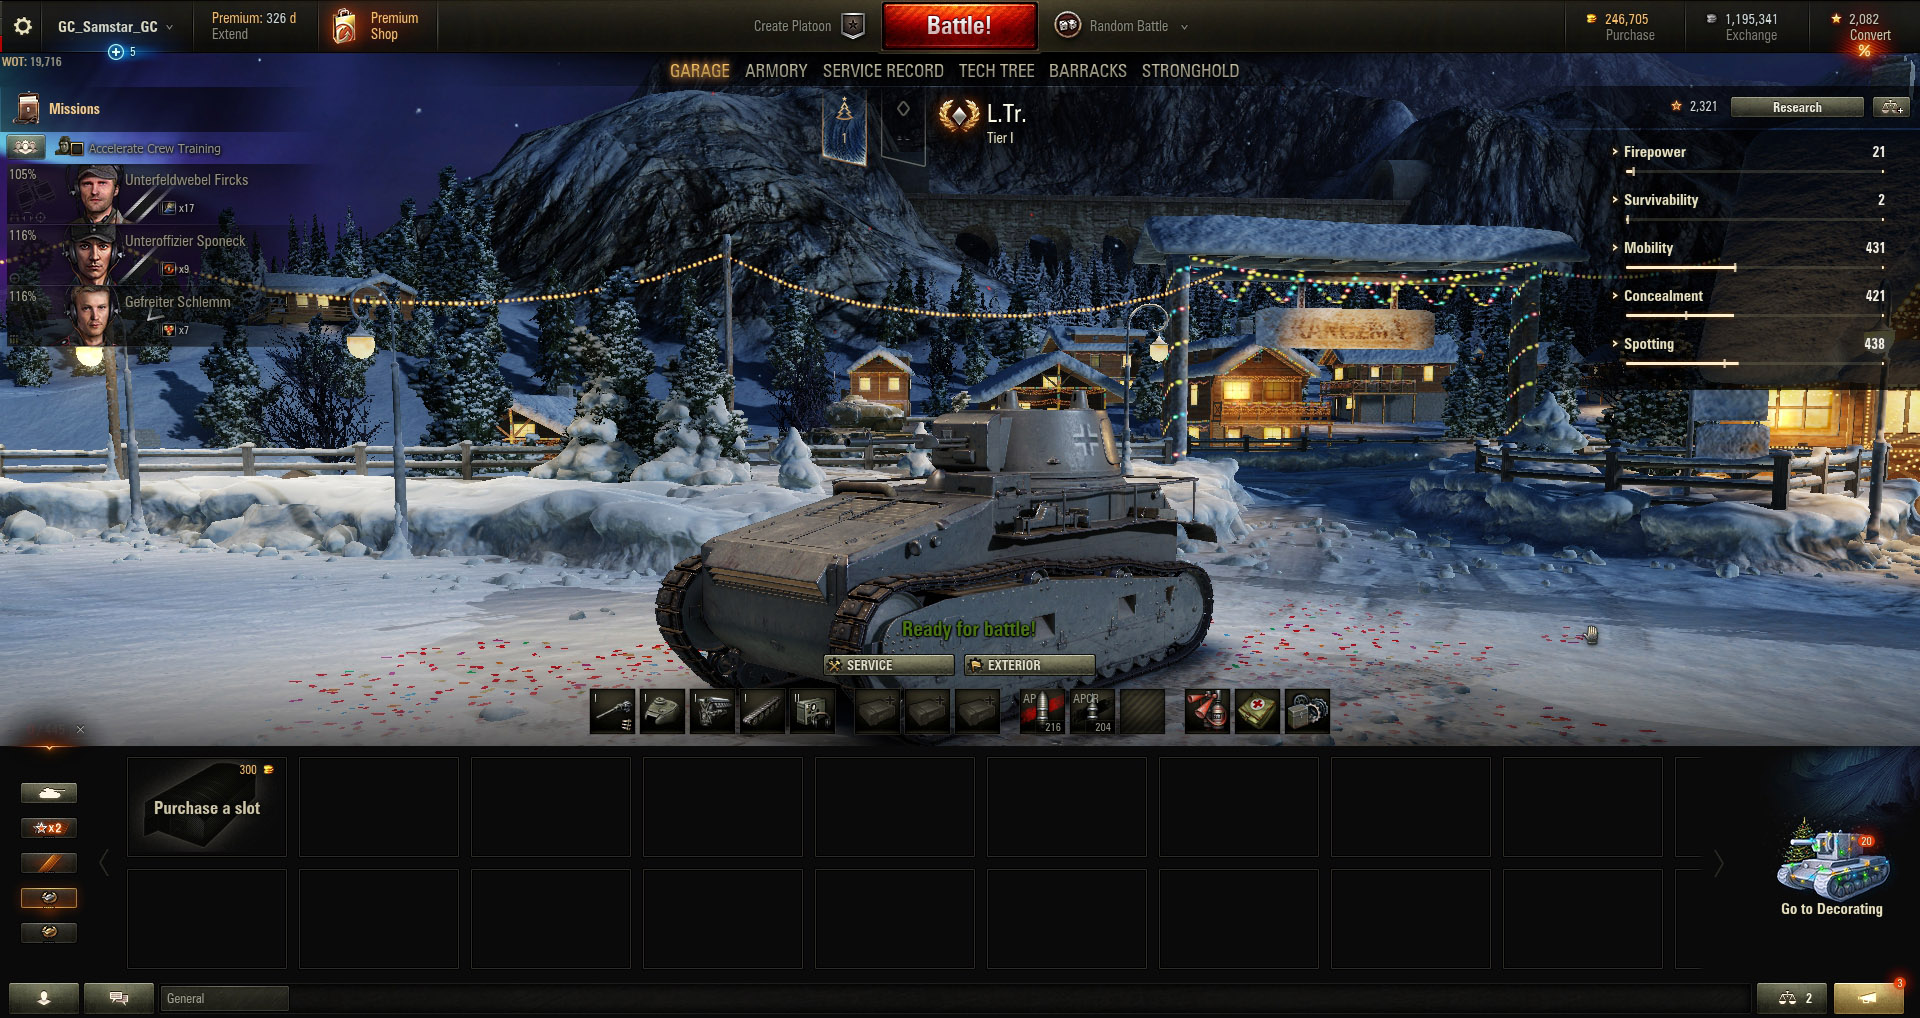 The Leichttraktor is one of the most powerful Tier 1 tanks.